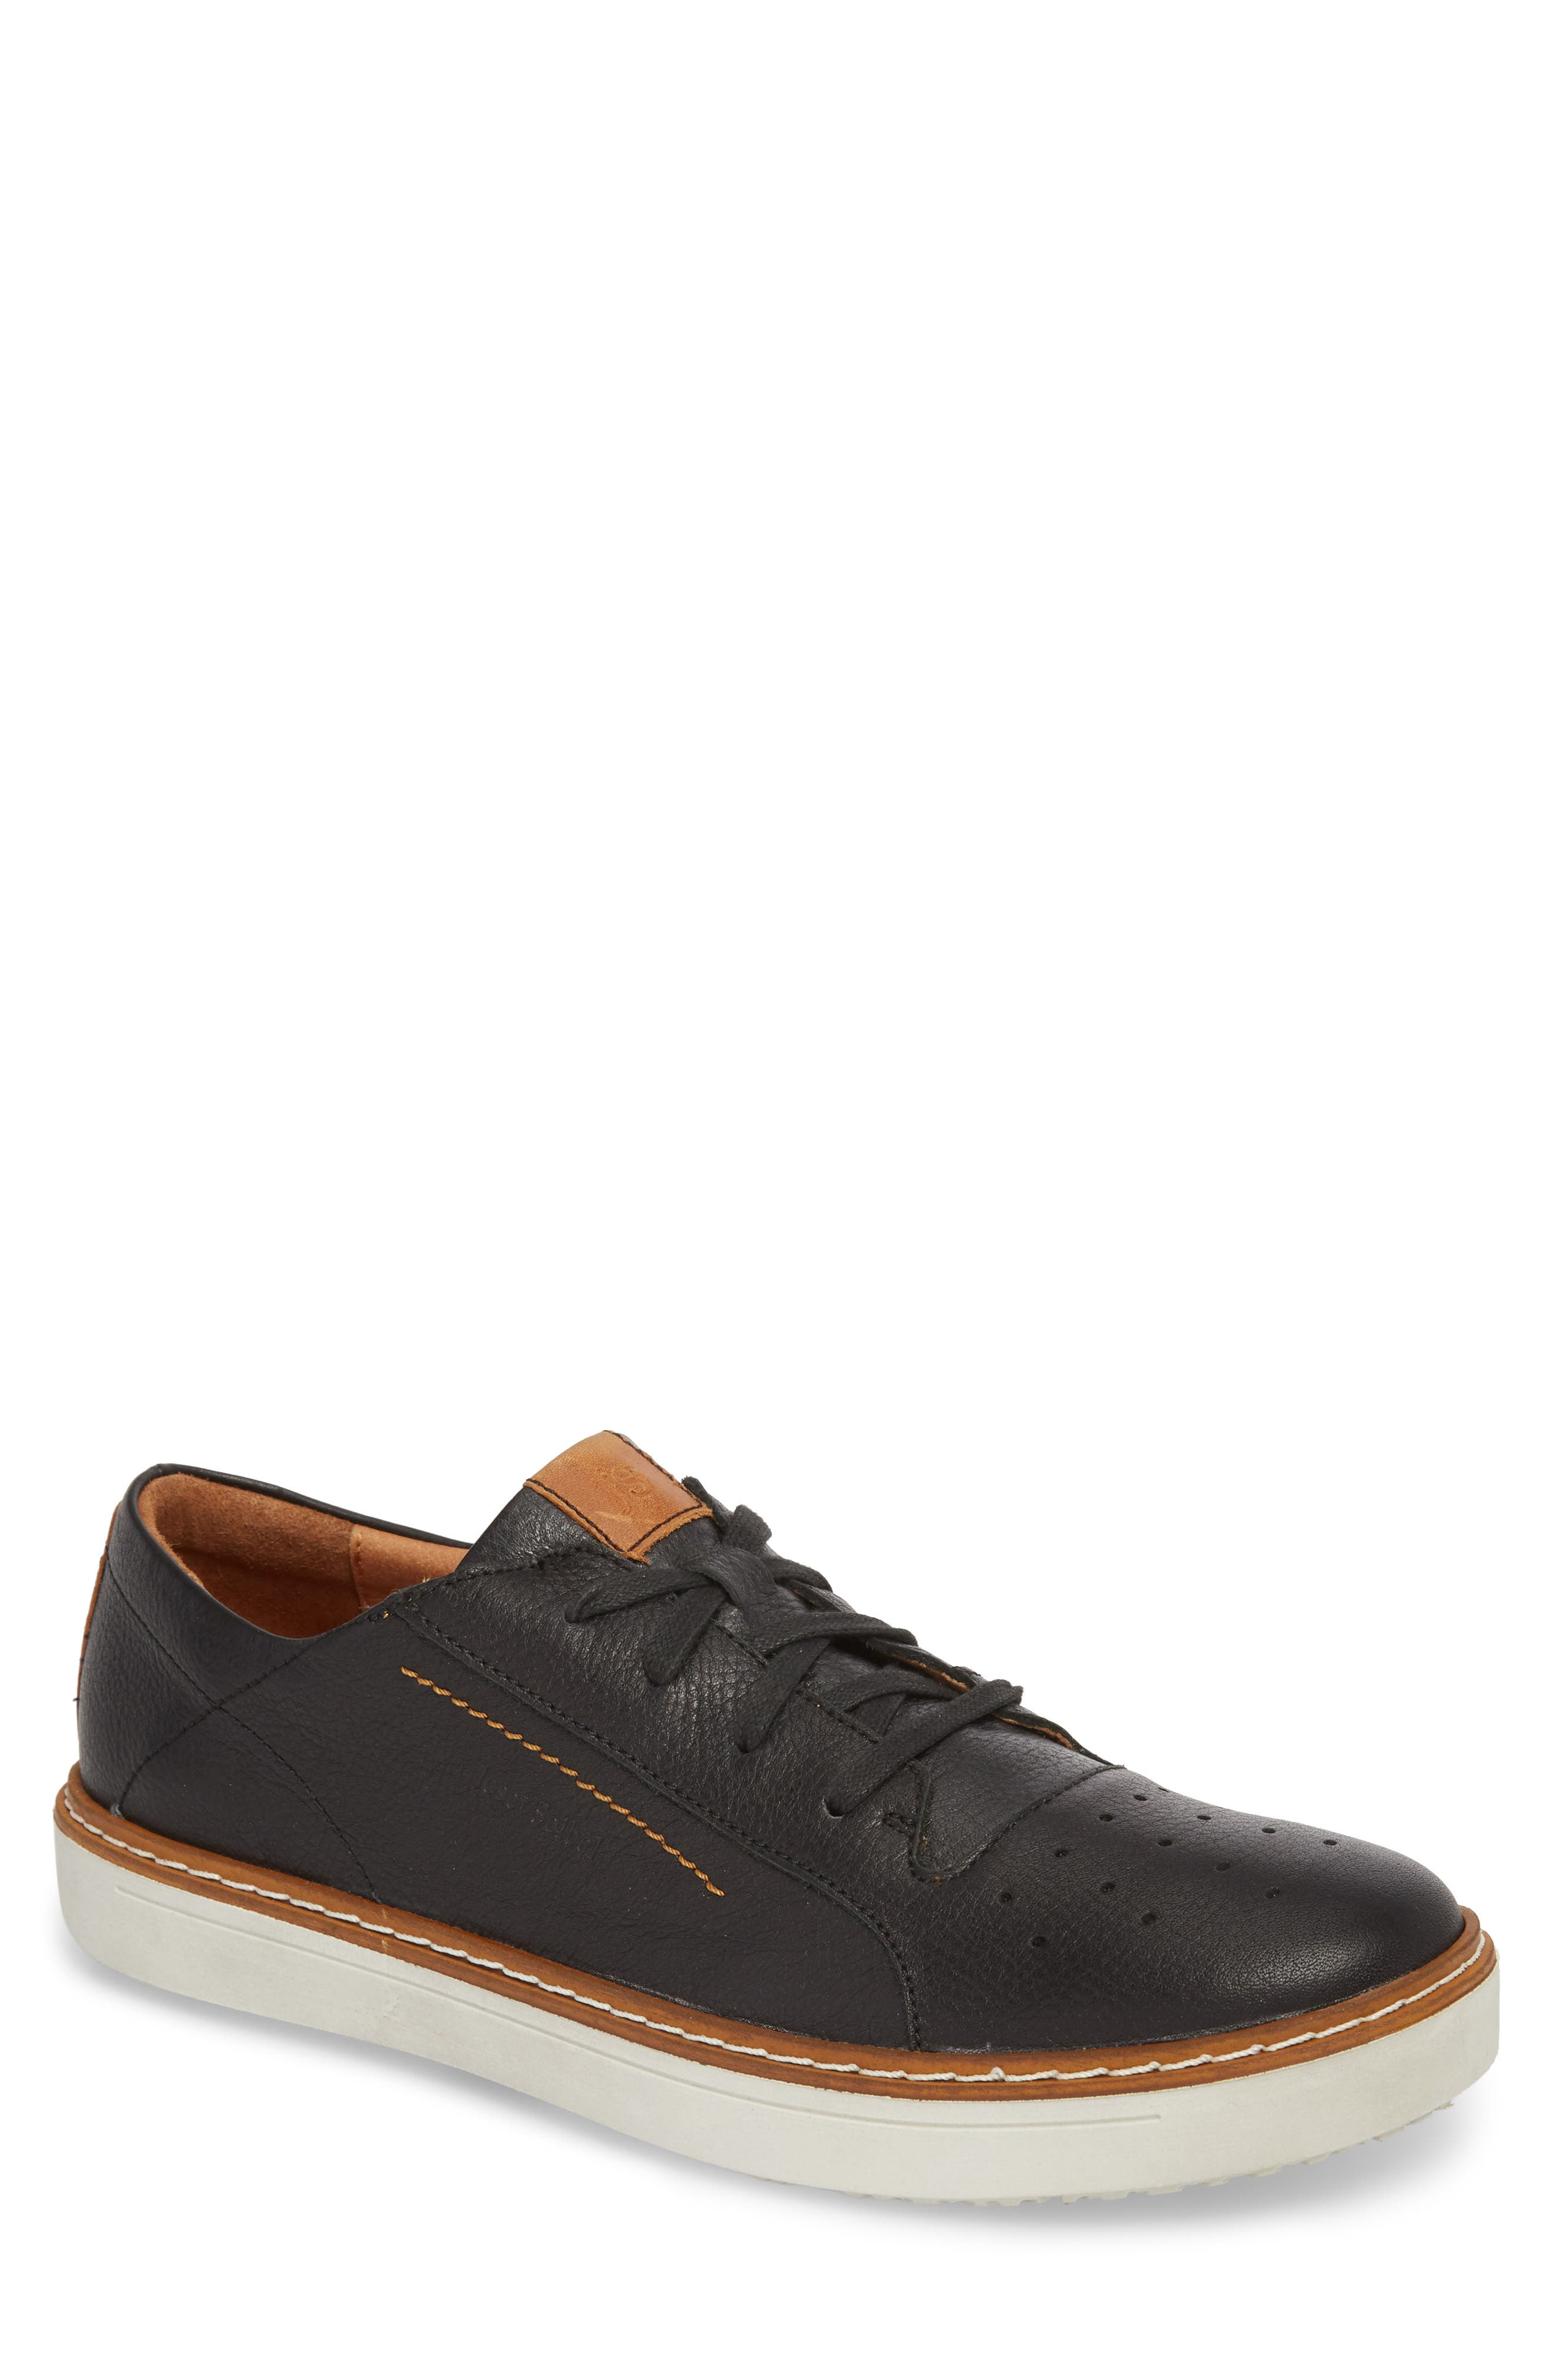 Quentin 03 Low Top Sneaker,                         Main,                         color, BLACK KOMBI LEATHER